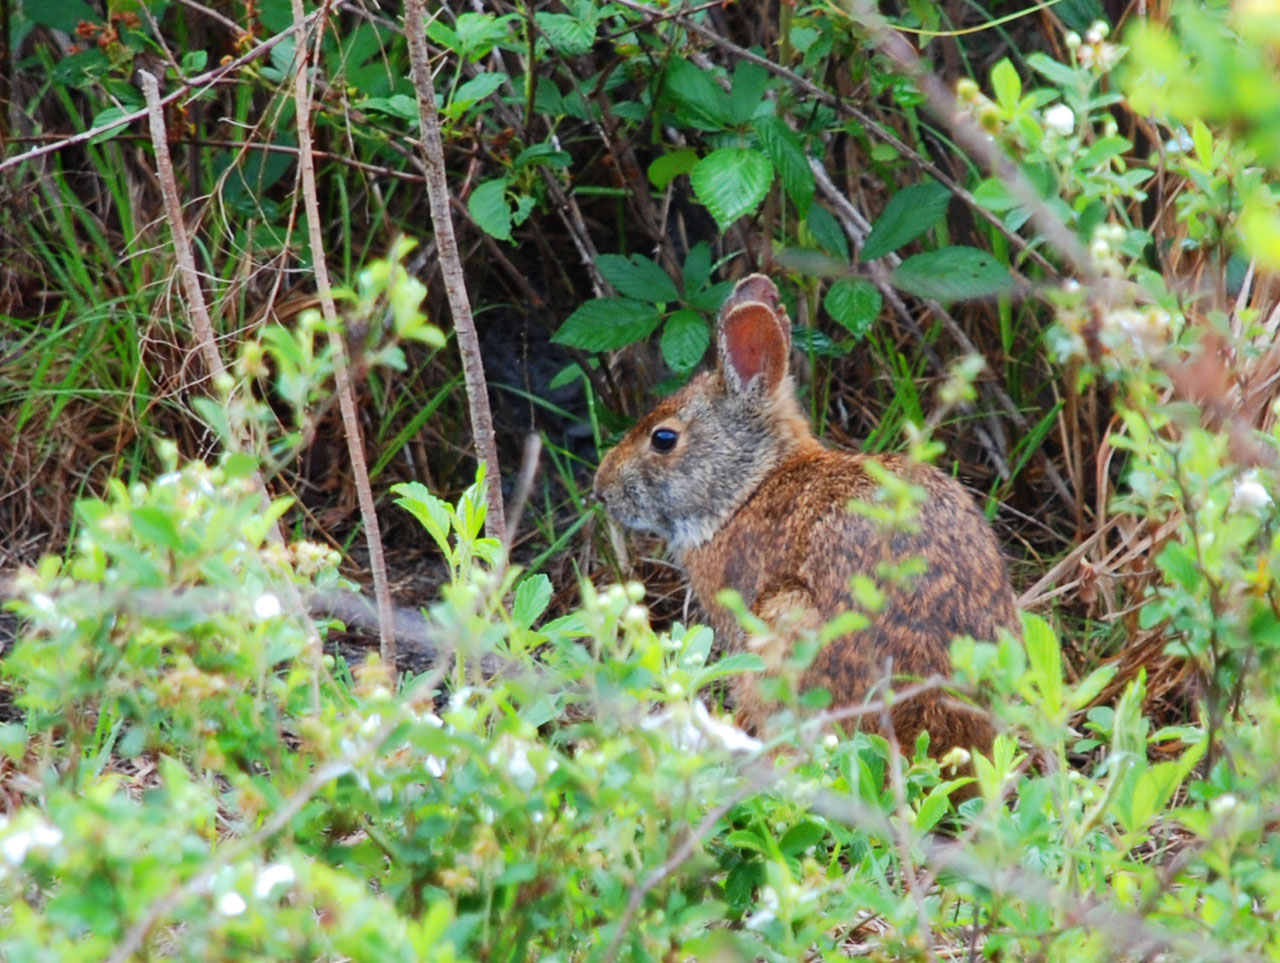 Rabbit in Shingle Creek, Kissimmee